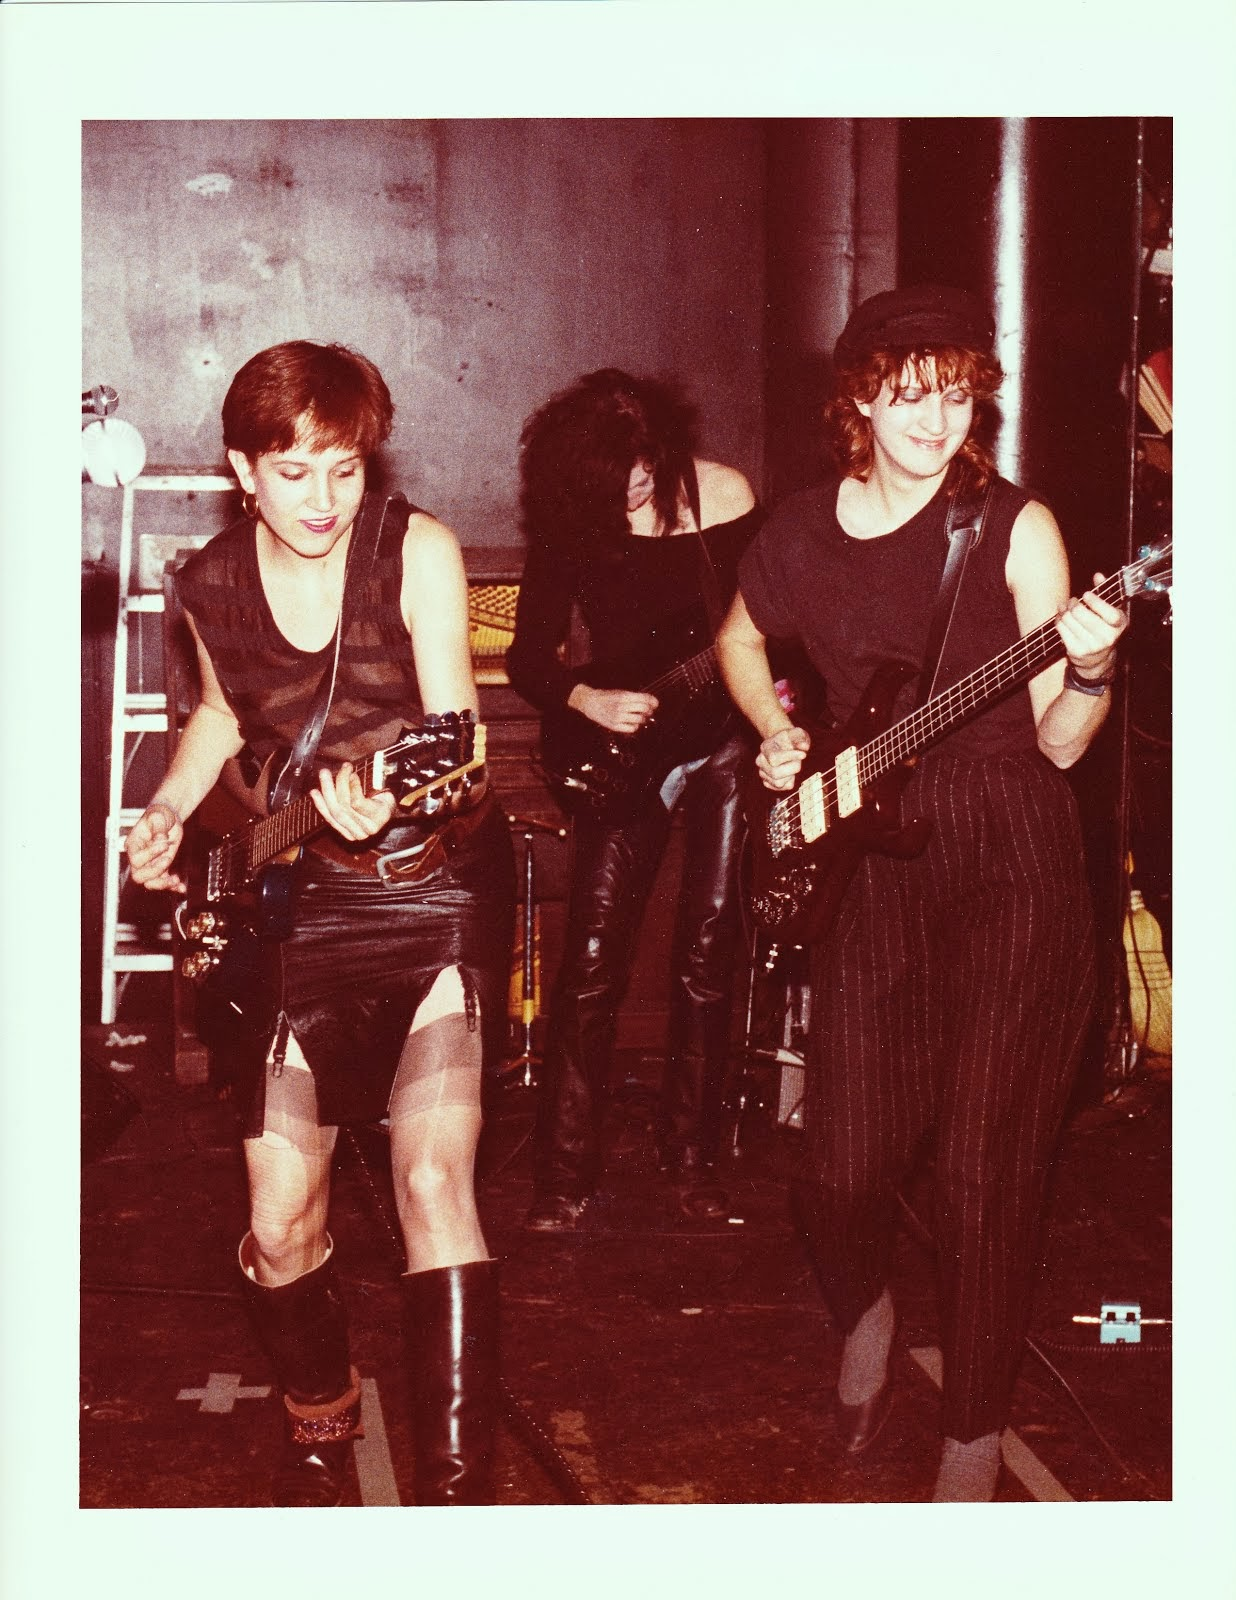 She, Irving Plaza, 1983